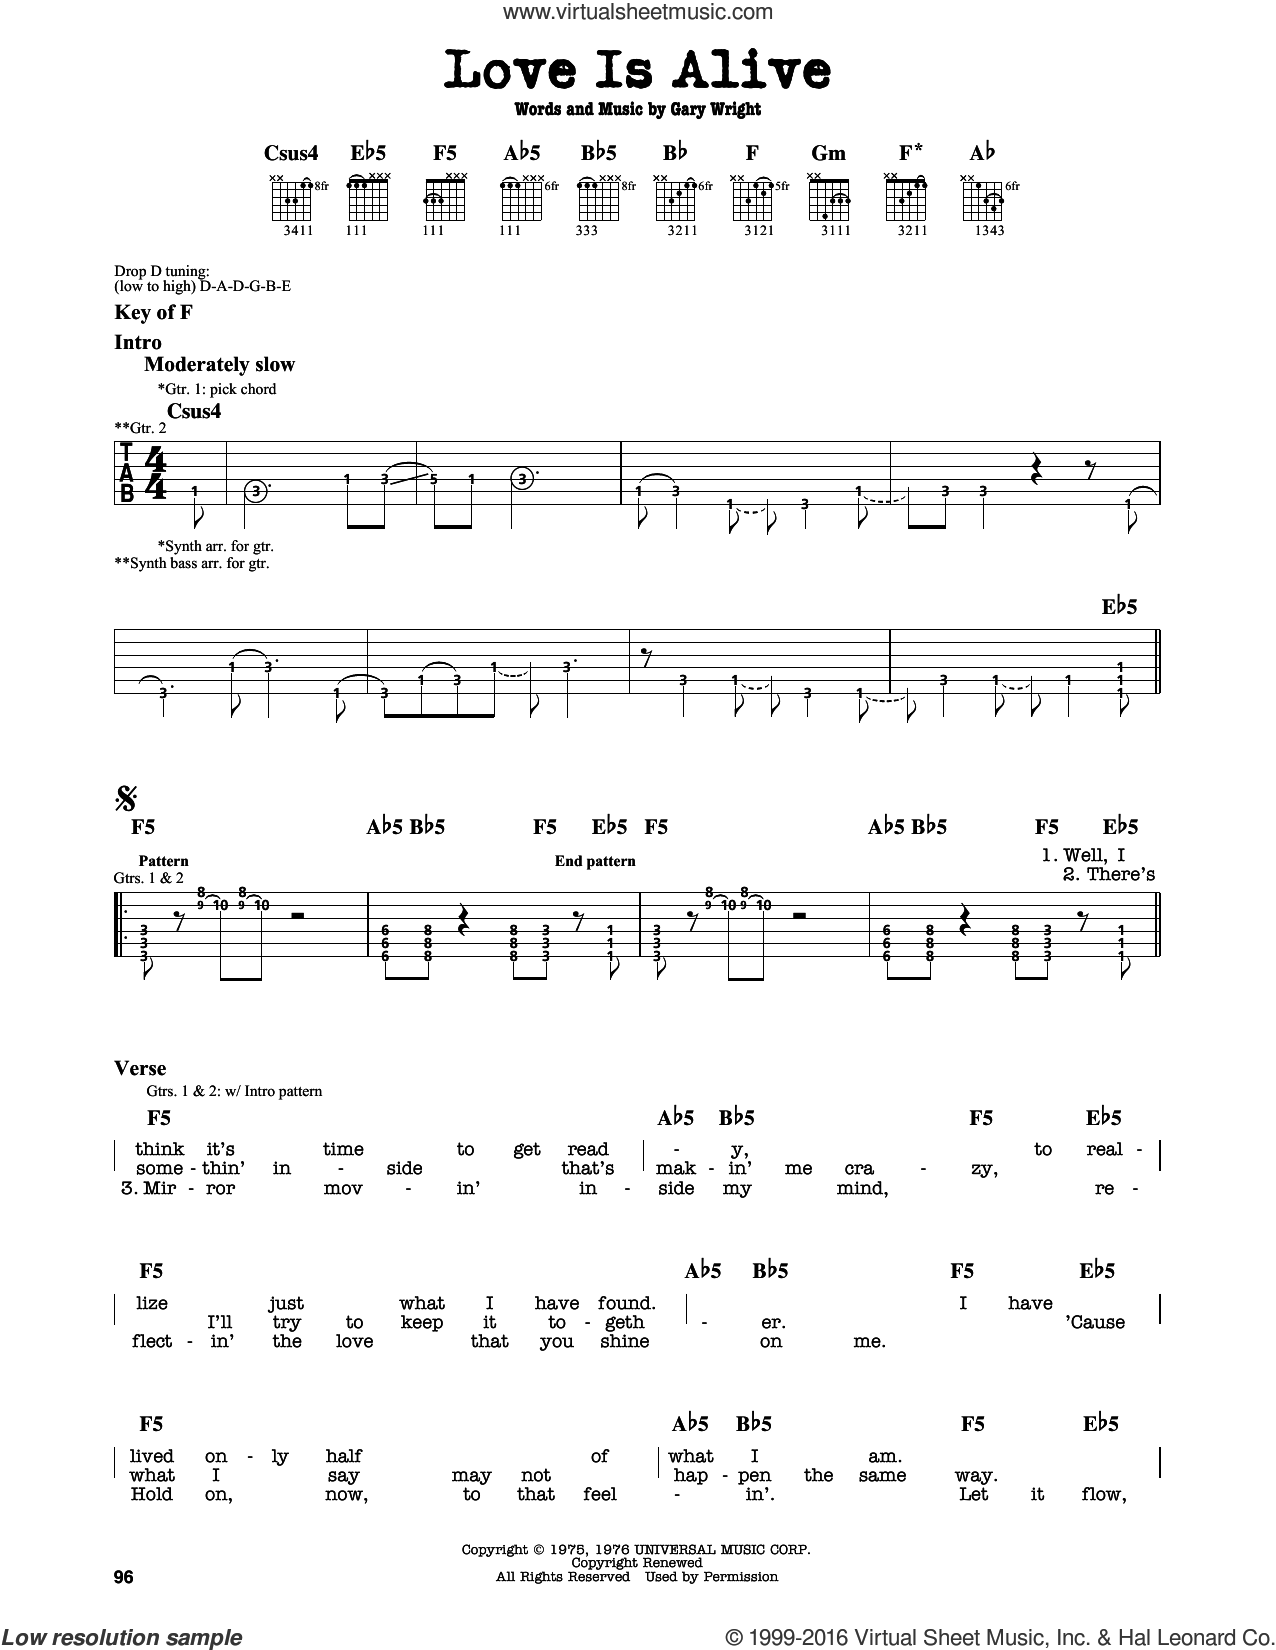 Love Is Alive sheet music for guitar solo (lead sheet) by Gary Wright. Score Image Preview.